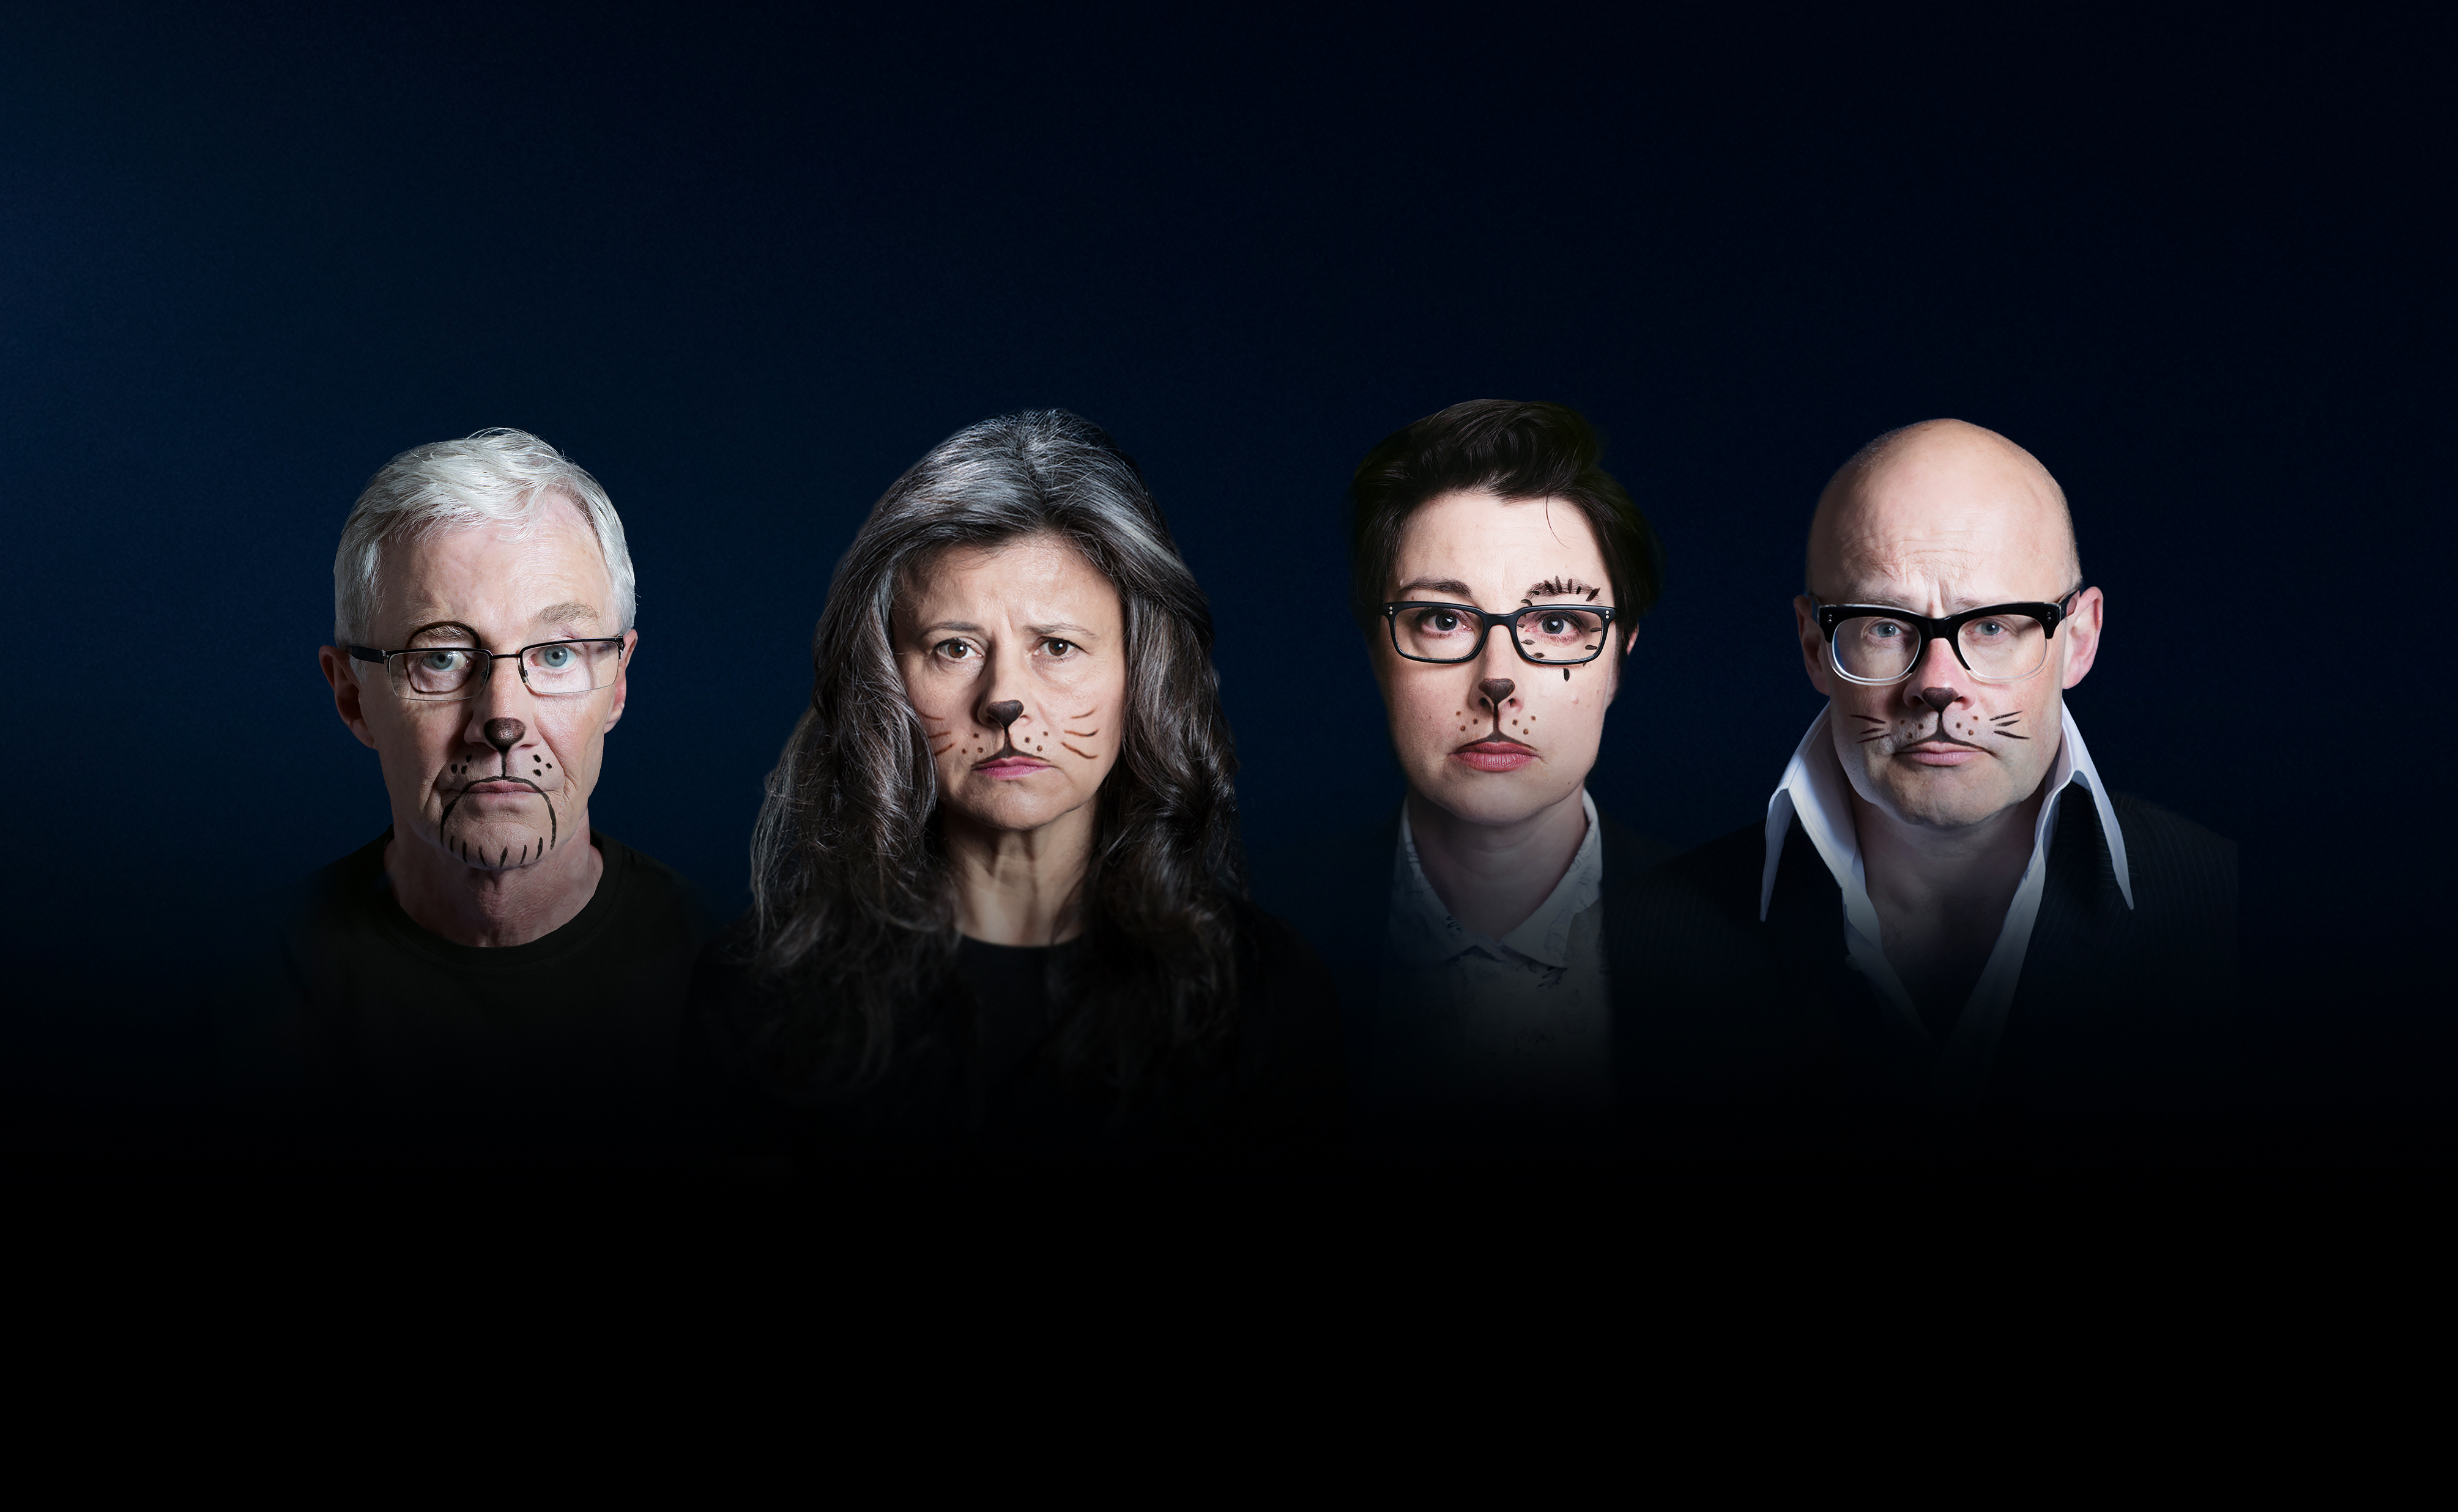 We secured the support of household-name celebrities and comedians – Paul O'Grady, Ricky Gervais, Sue Perkins, Harry Hill and Tracy Ullman – to champion the #notfunny cause.